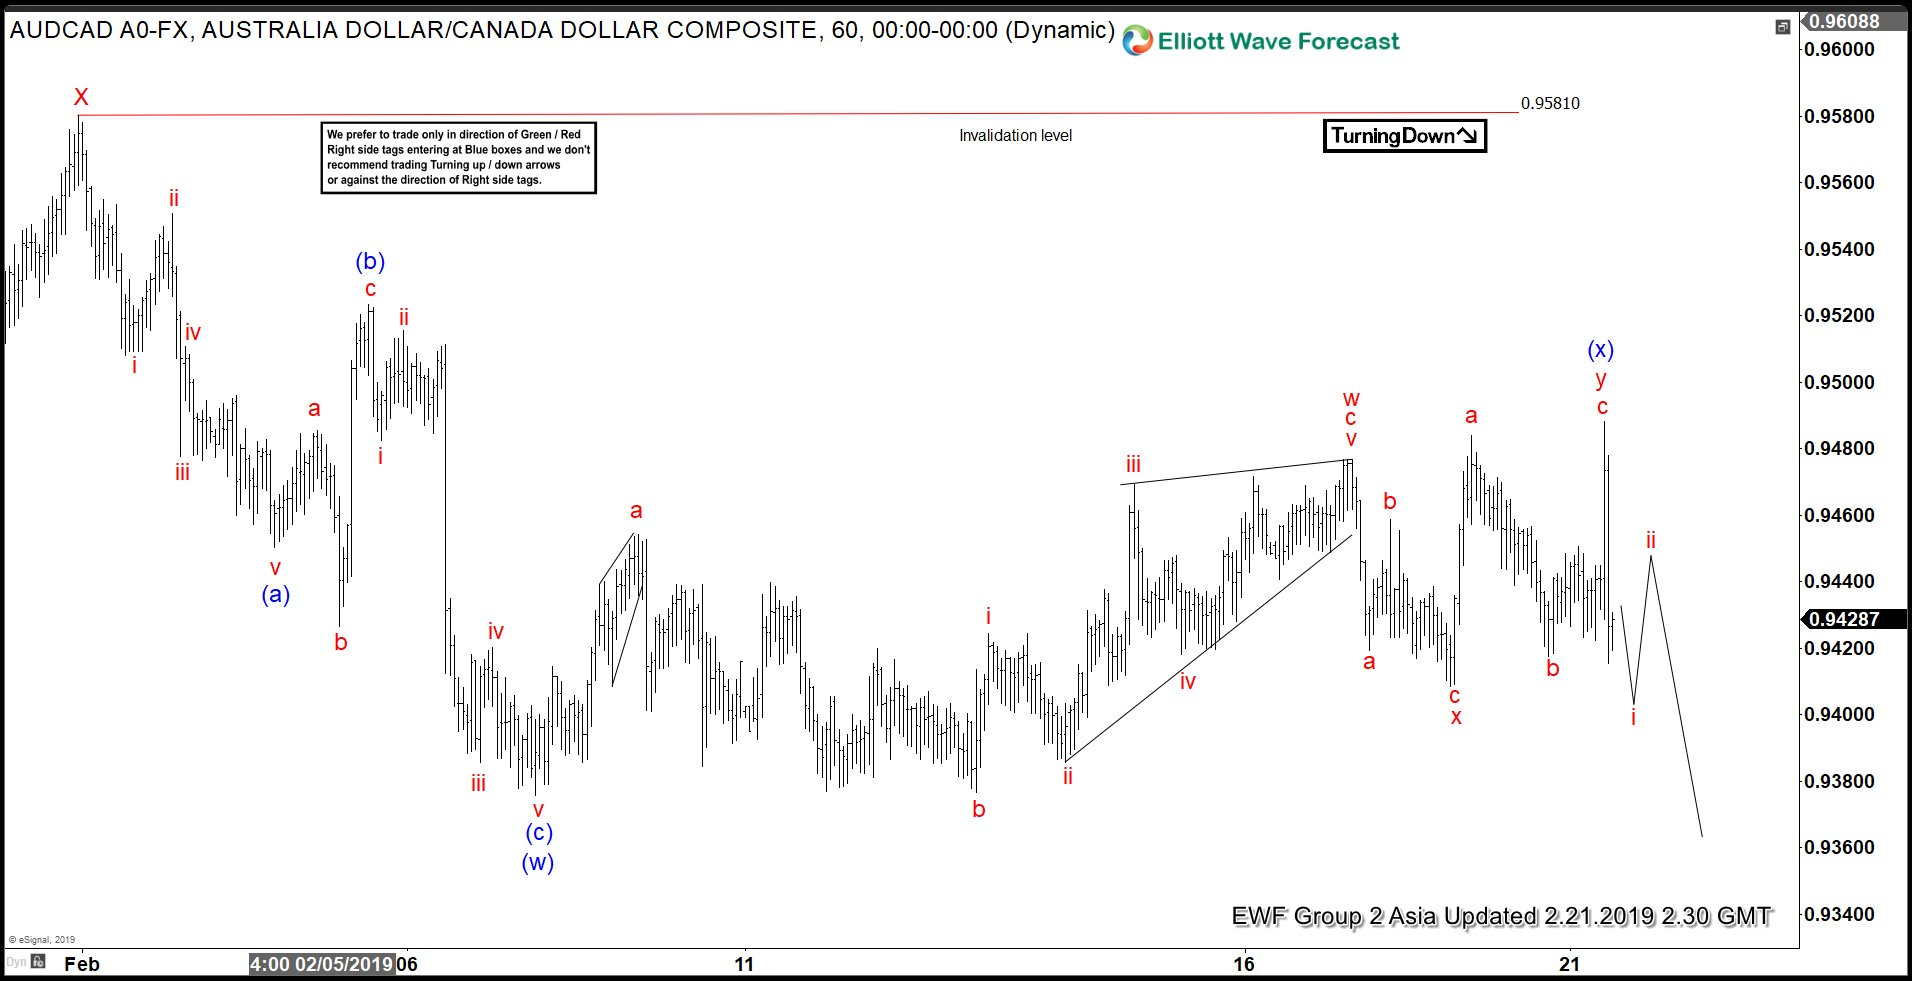 AUDCAD Elliott Wave View: Forecasting The Bounce